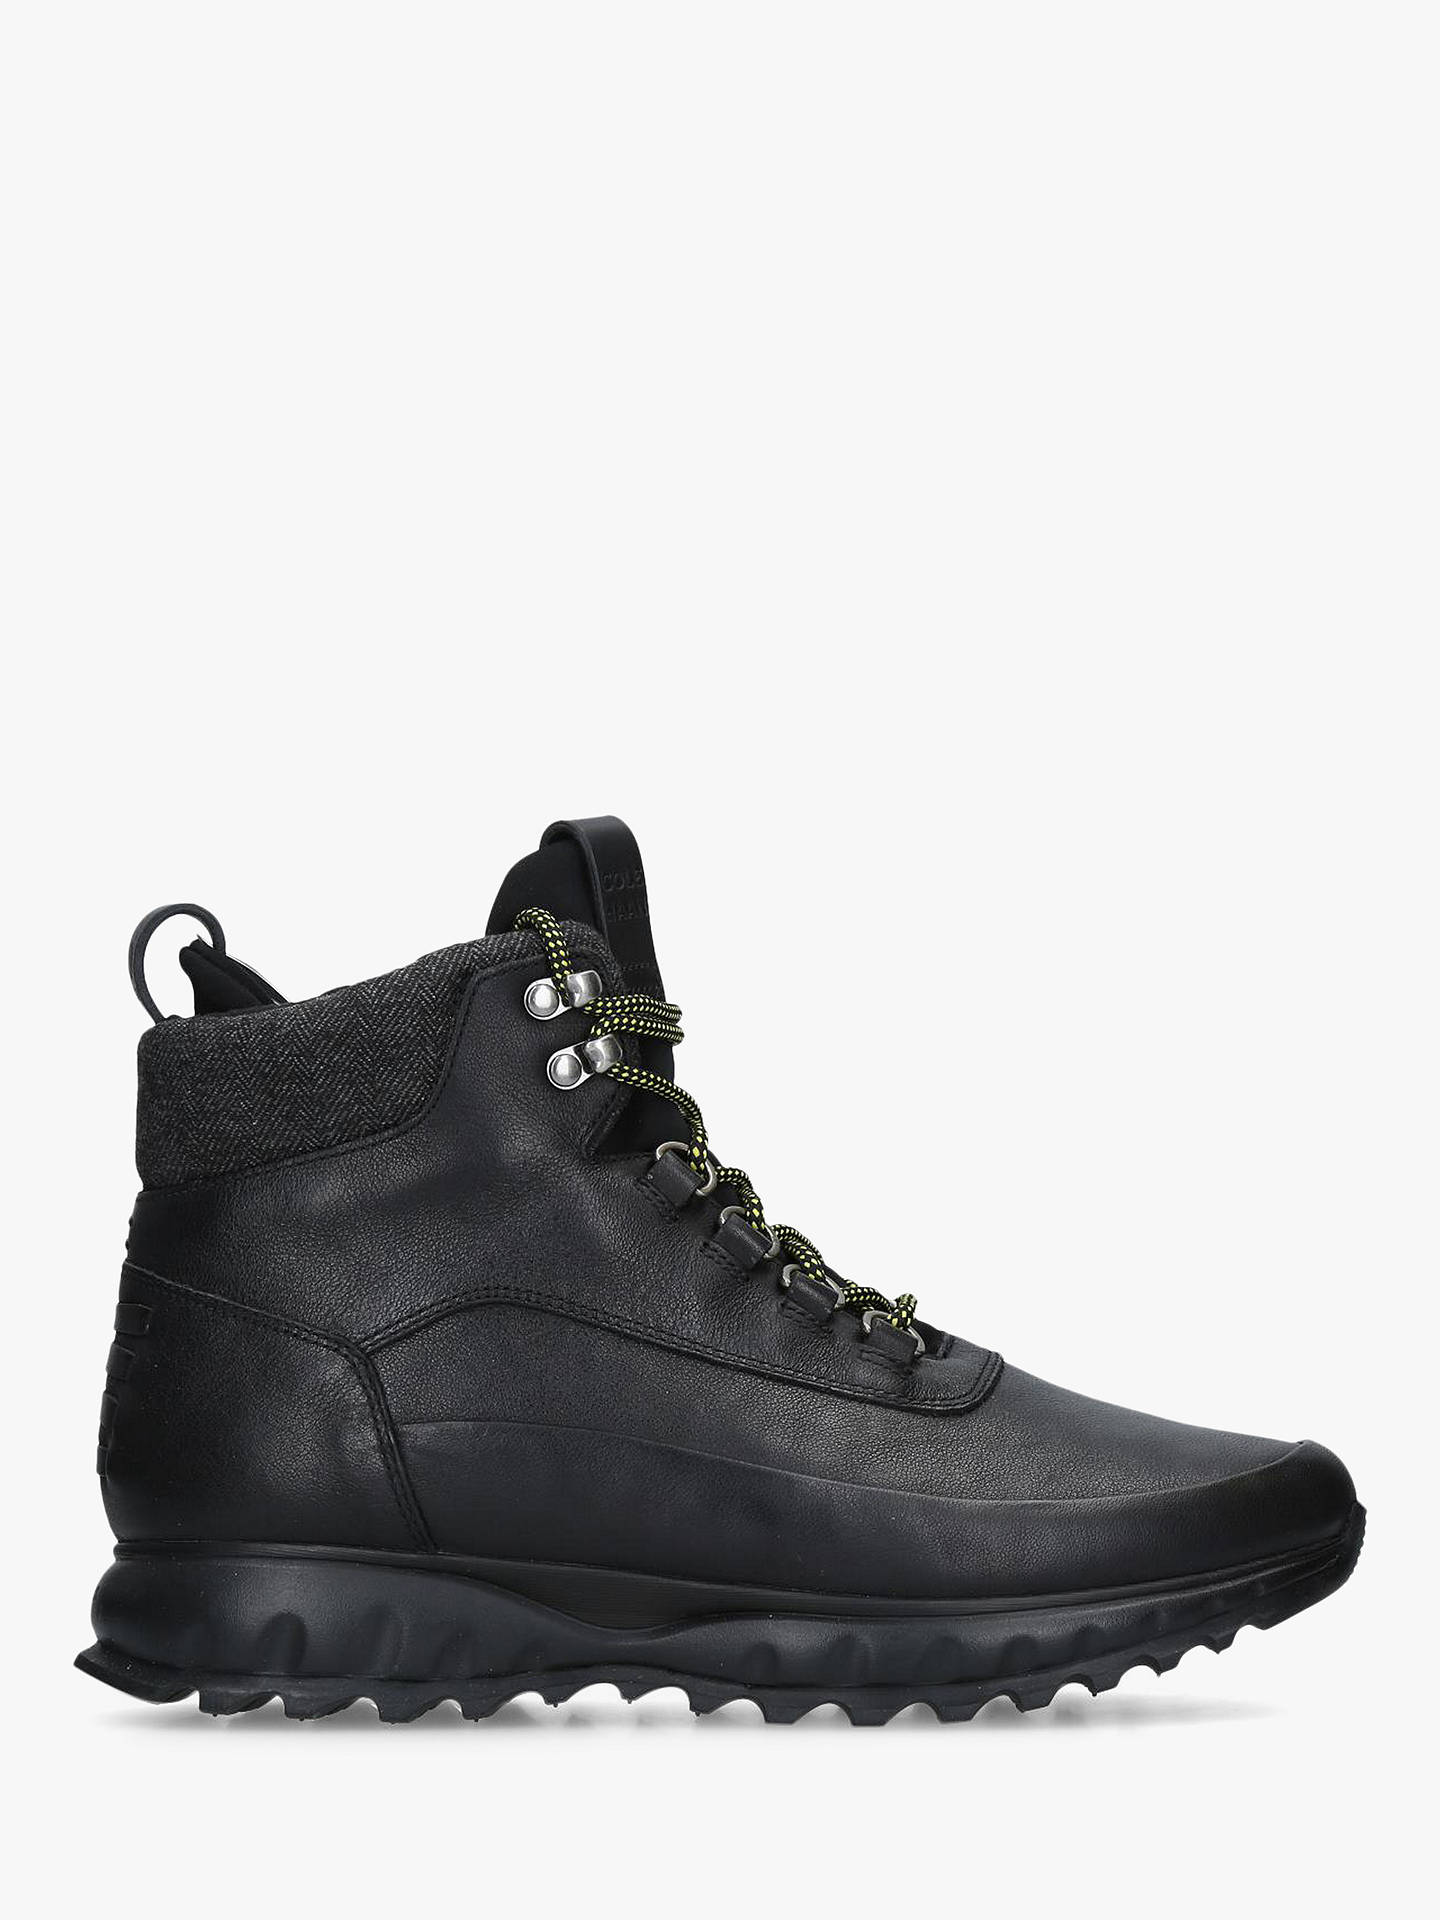 73b18689c78 Cole Haan Grand Explore Lace Up Hiker Boots, Black Leather